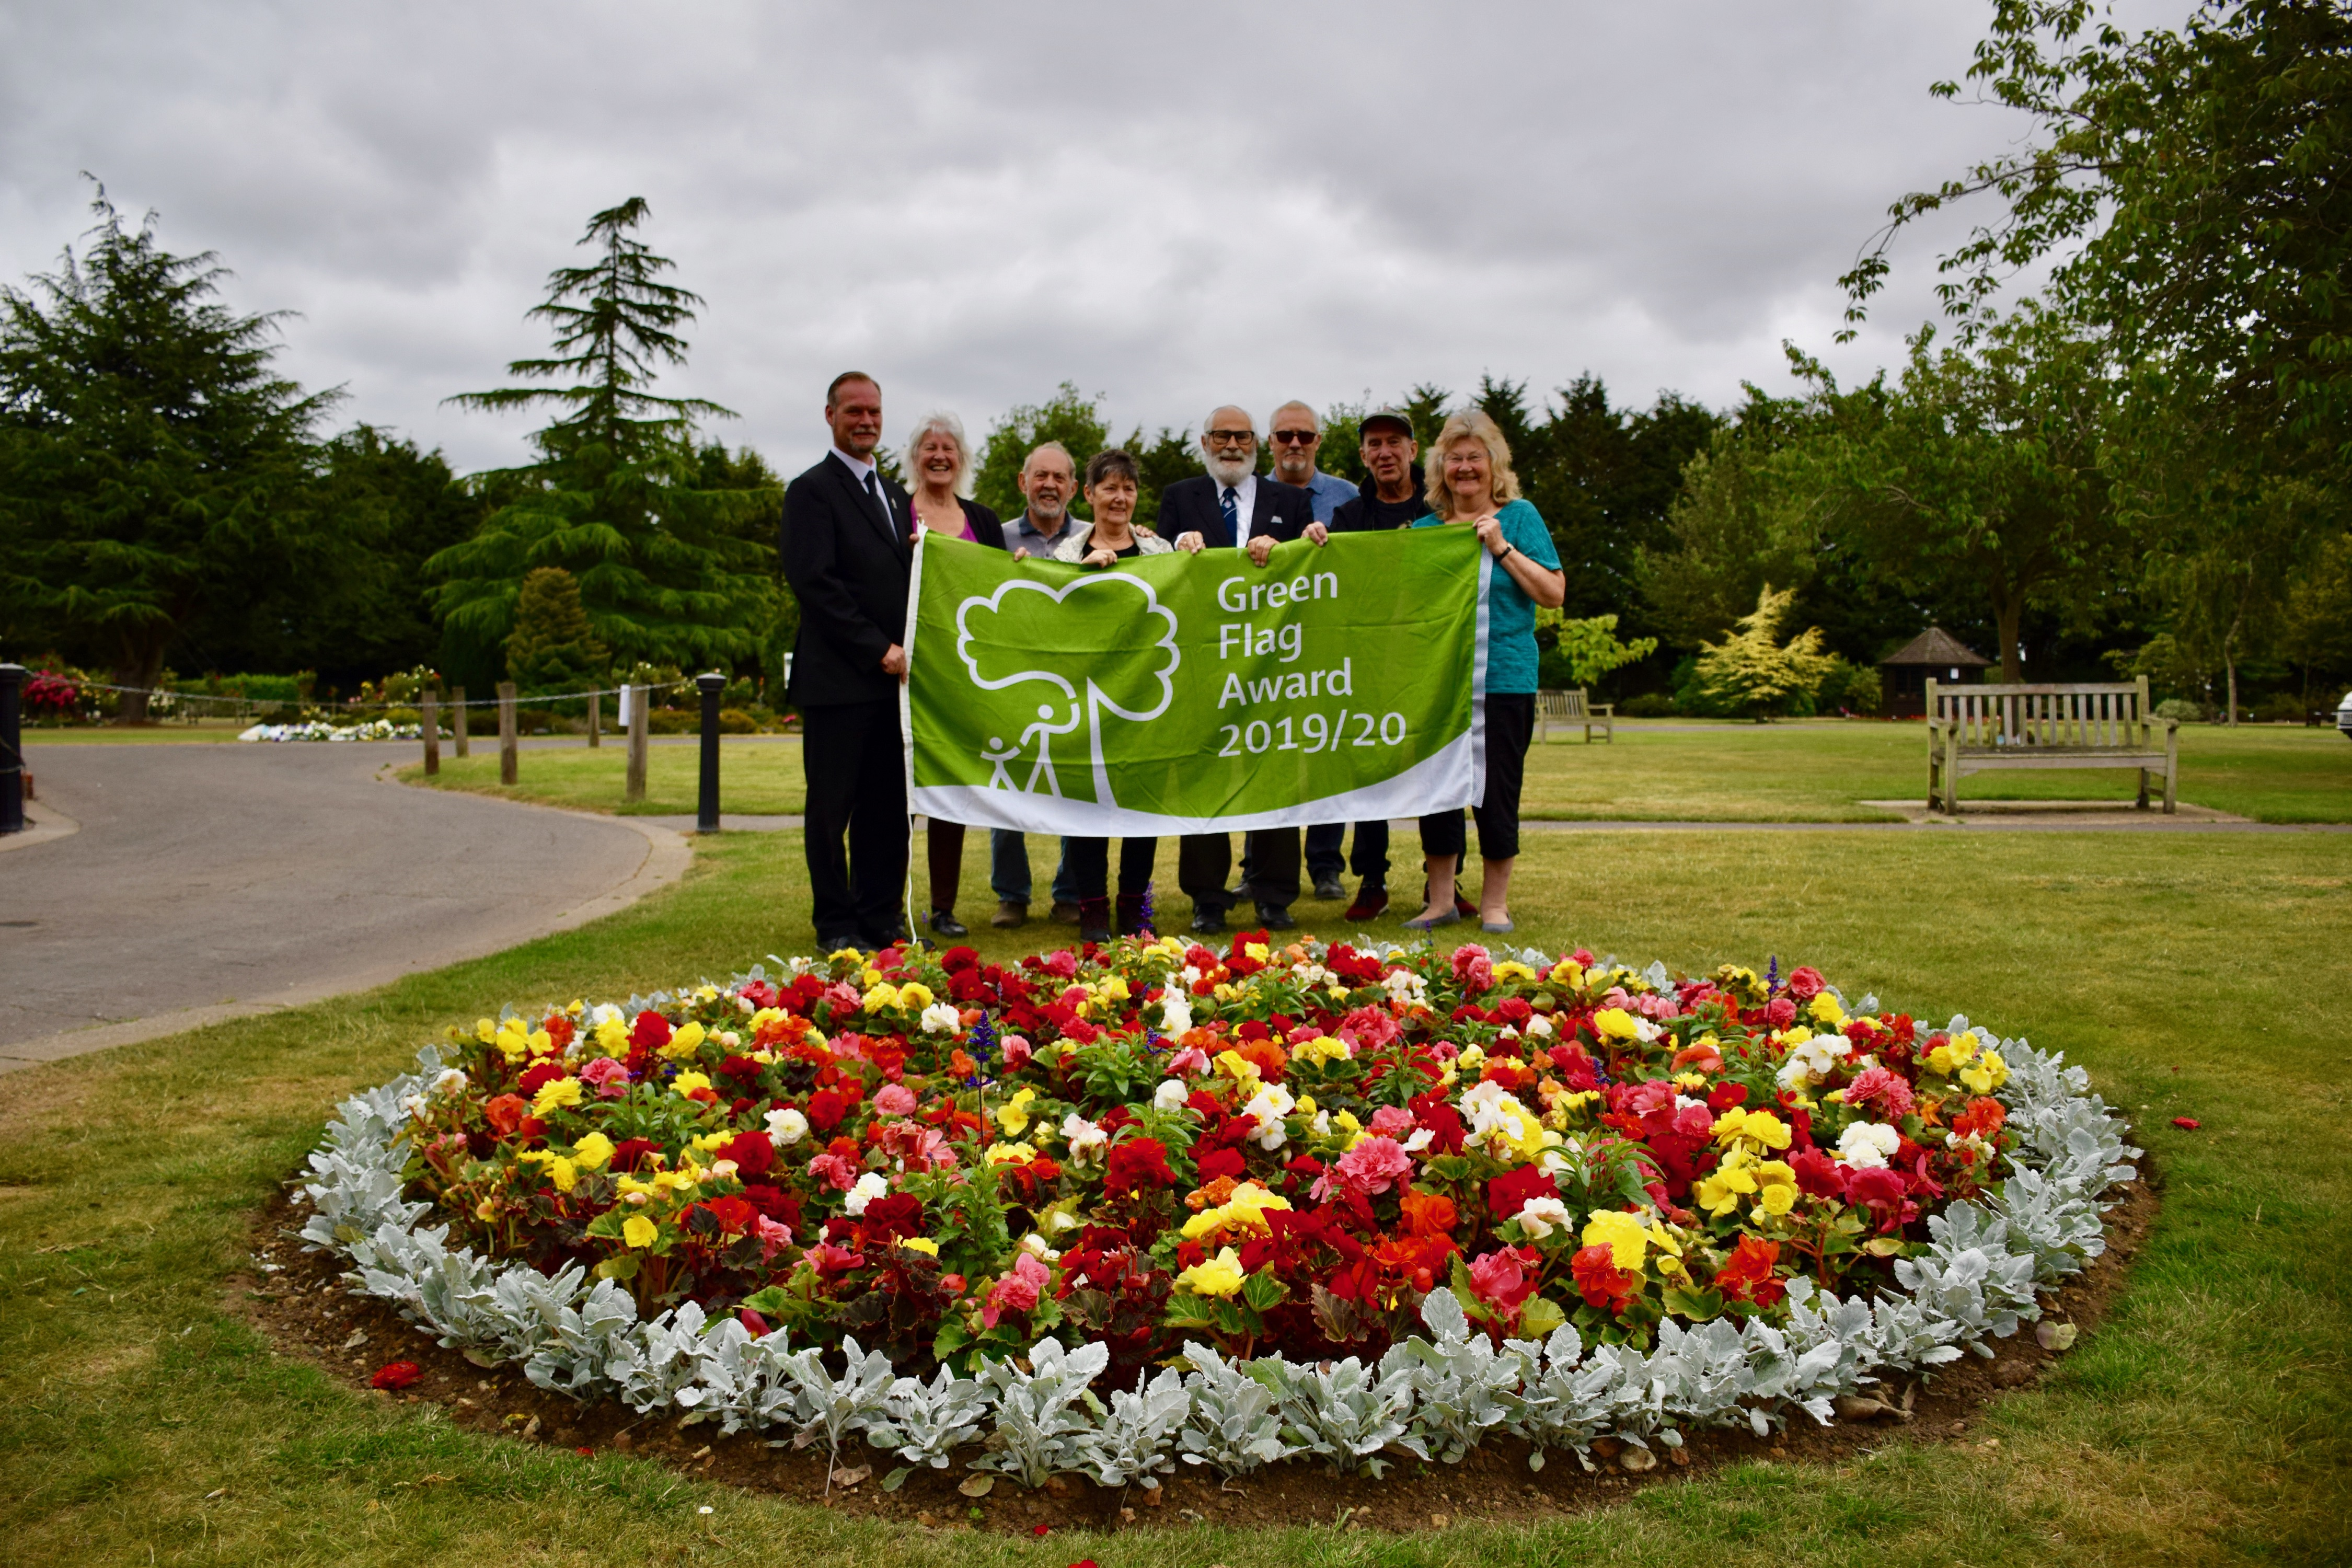 Weeley Crematorium 2019/20 Green Flag Award